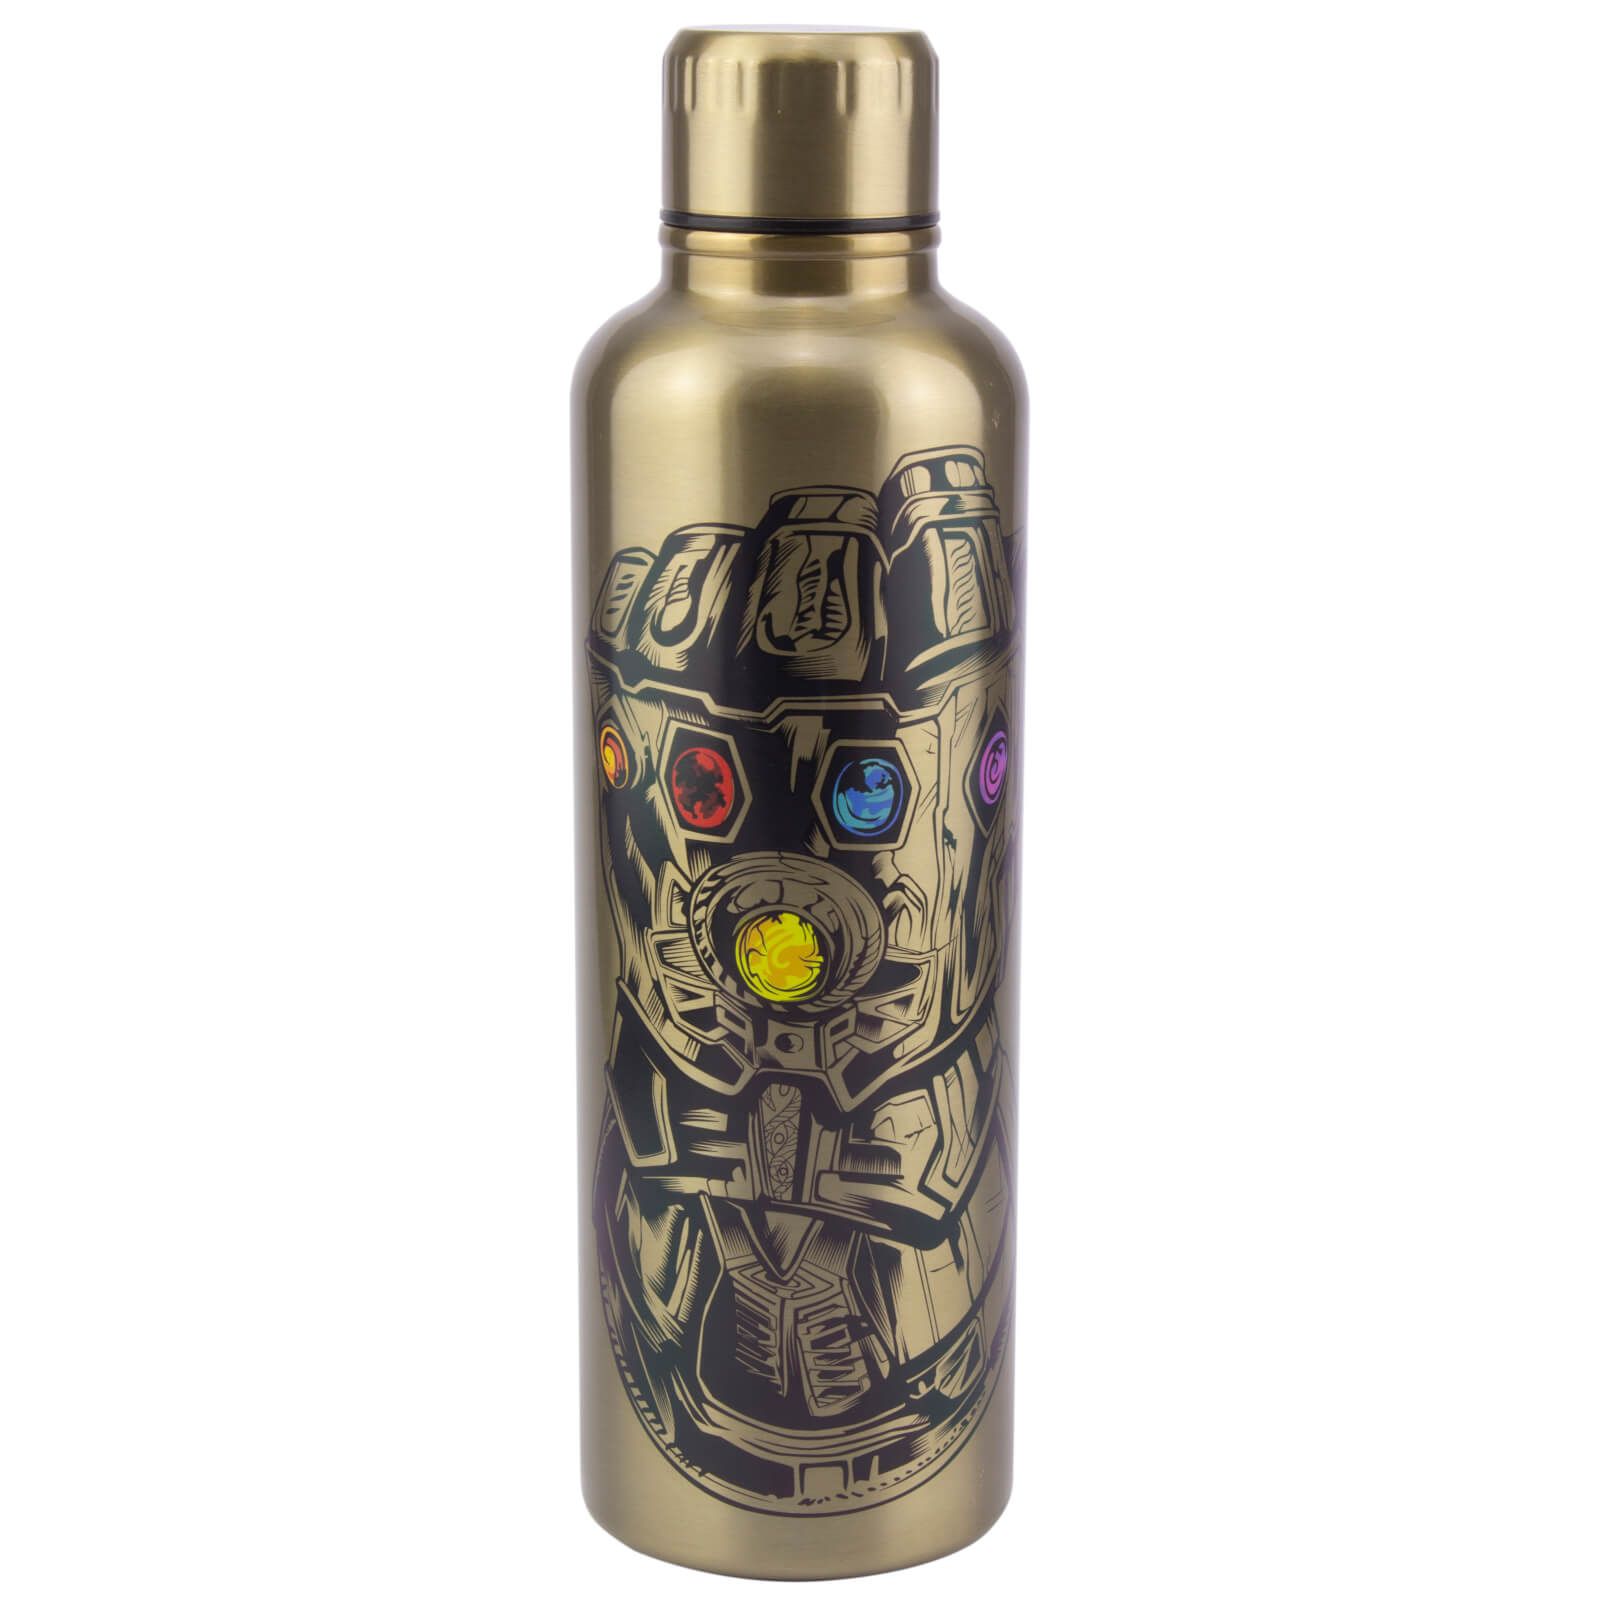 Paladone Avengers Endgame Metal Water Bottle.